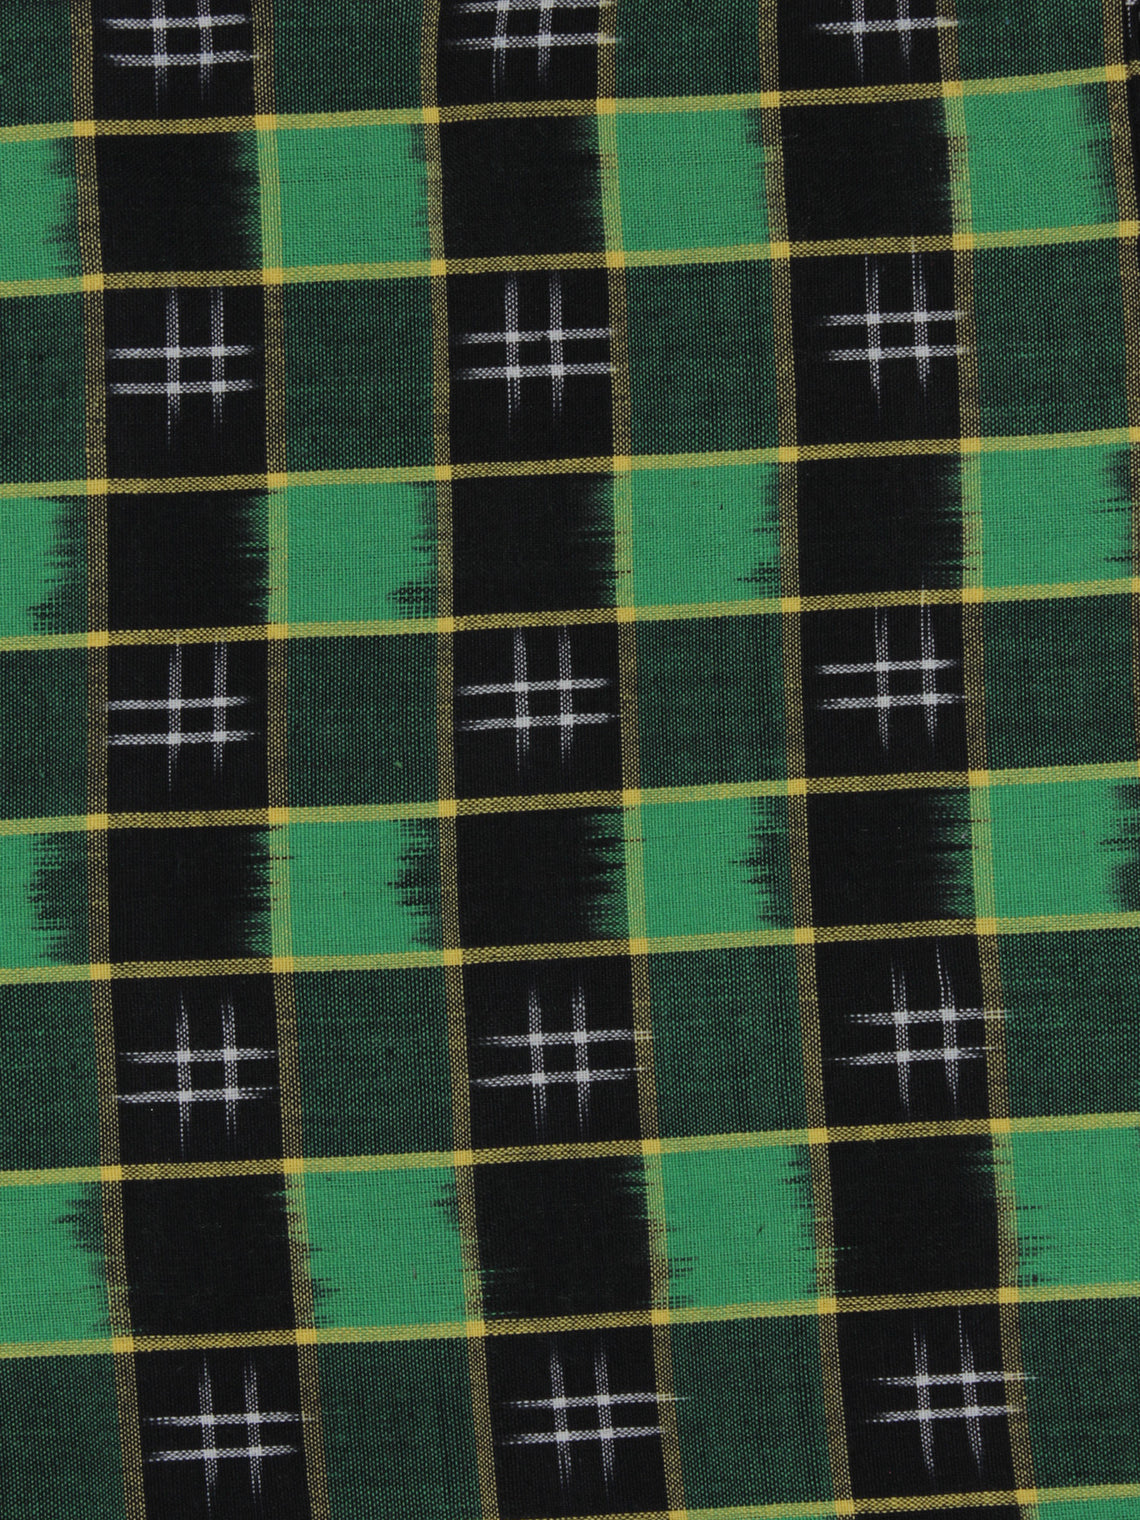 Green Black Ivory Pochampally Hand Weaved Double Ikat Fabric Per Meter - F091F767